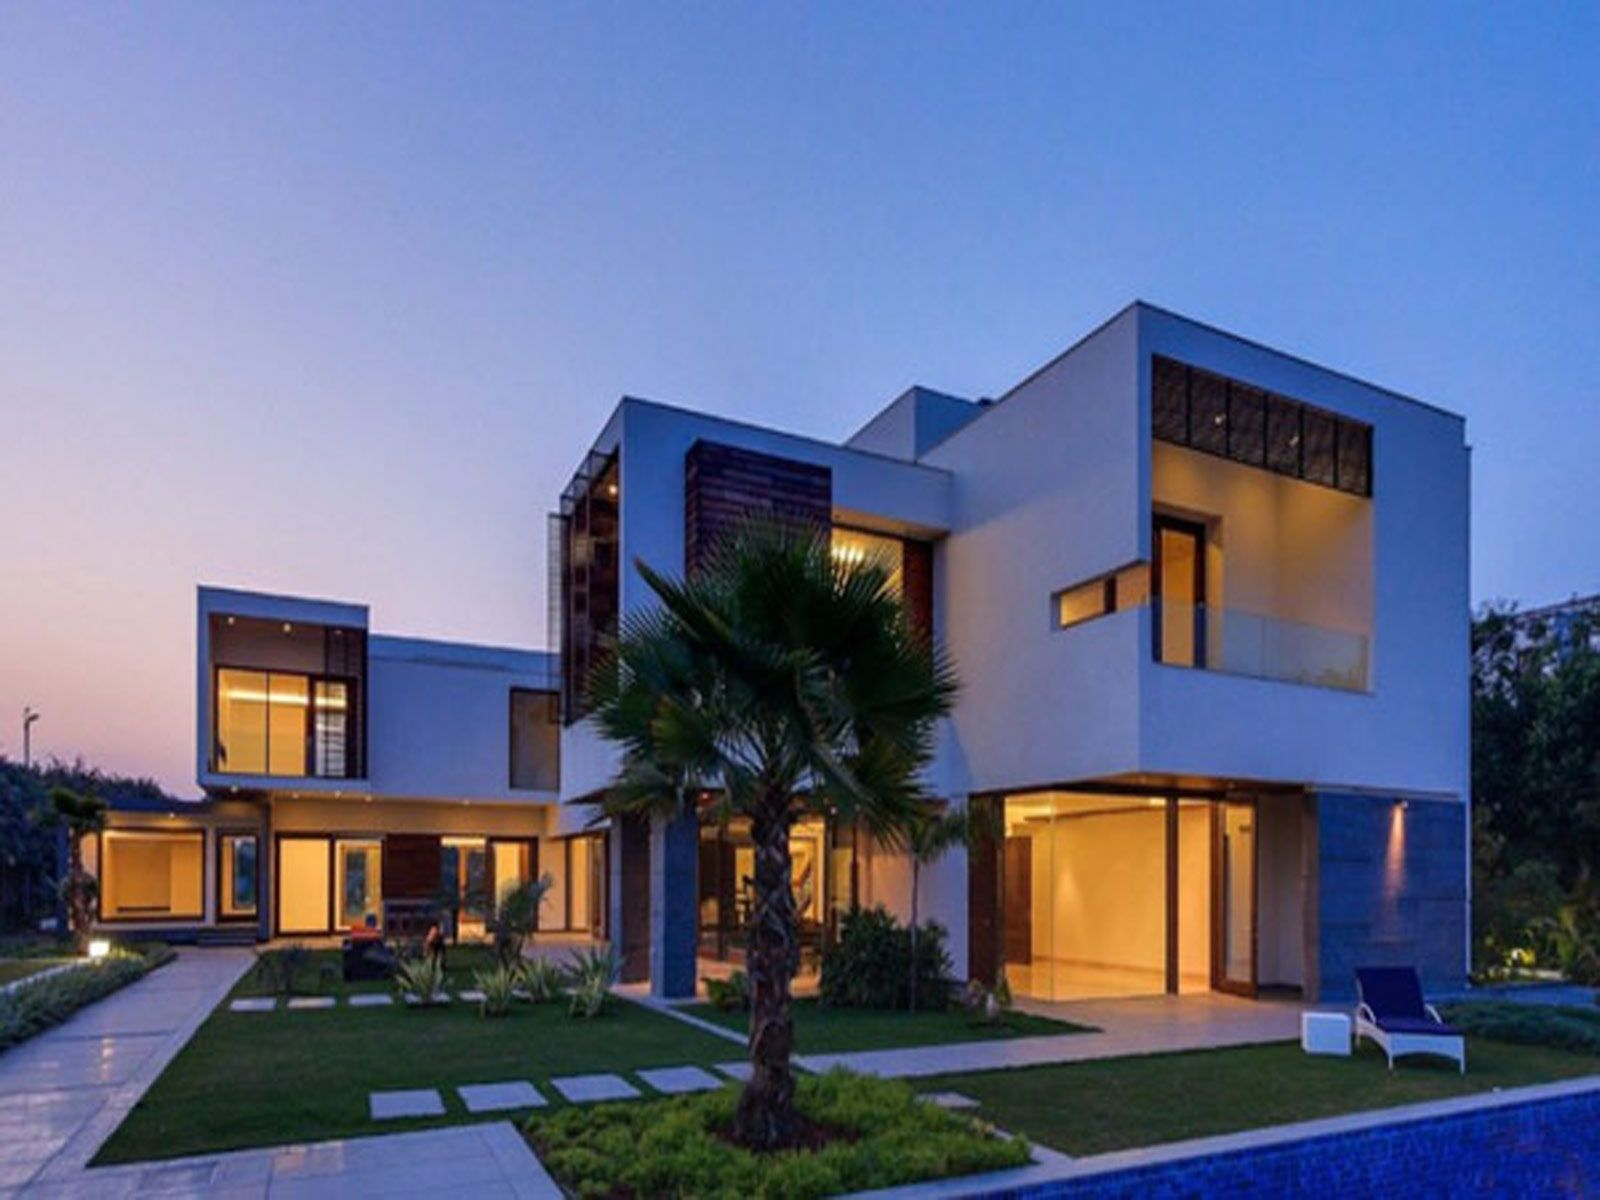 Contemporary luxury home and architecture in new design Modern architecture home for sale